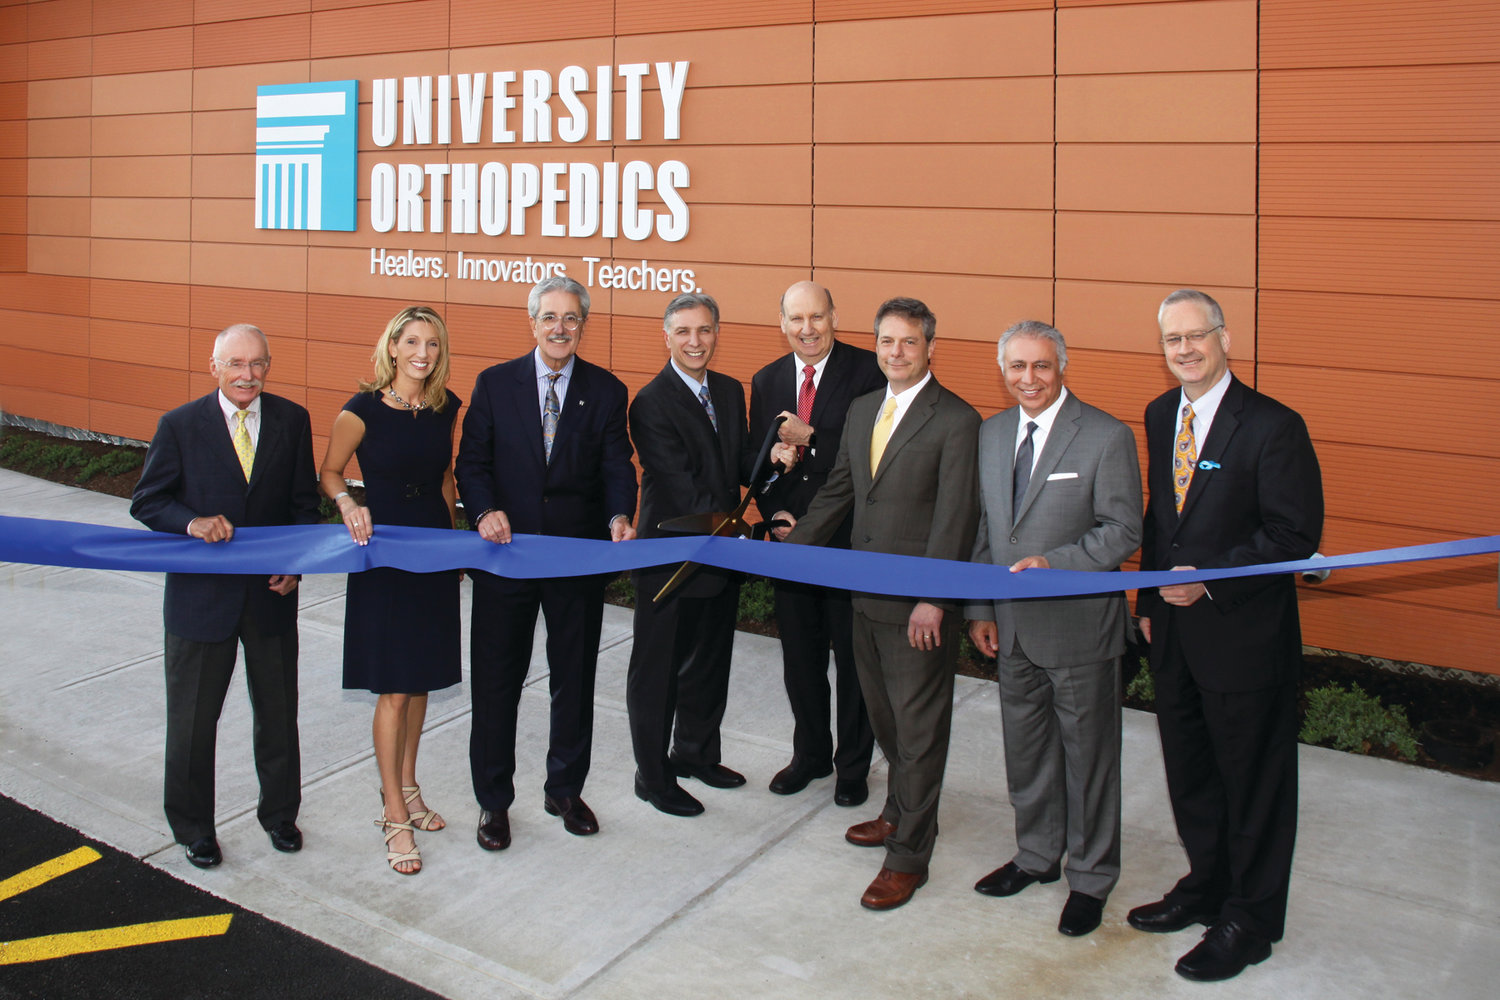 From left to right, Edward Burman Jr., president of EW Burman Inc.; Kathy Snelgrove, COO of University Orthopedics; Michael Integlia, president of Michael Integlia & Co.; Mark Palumbo, MD, University Orthopedics; Edward Akelman, MD, president of University Orthopedics; Weber Shill, CEO of University Orthopedics; Mehdi Khosrovani, president of NEMD Architects Inc.; and East Providence Mayor James Briden.